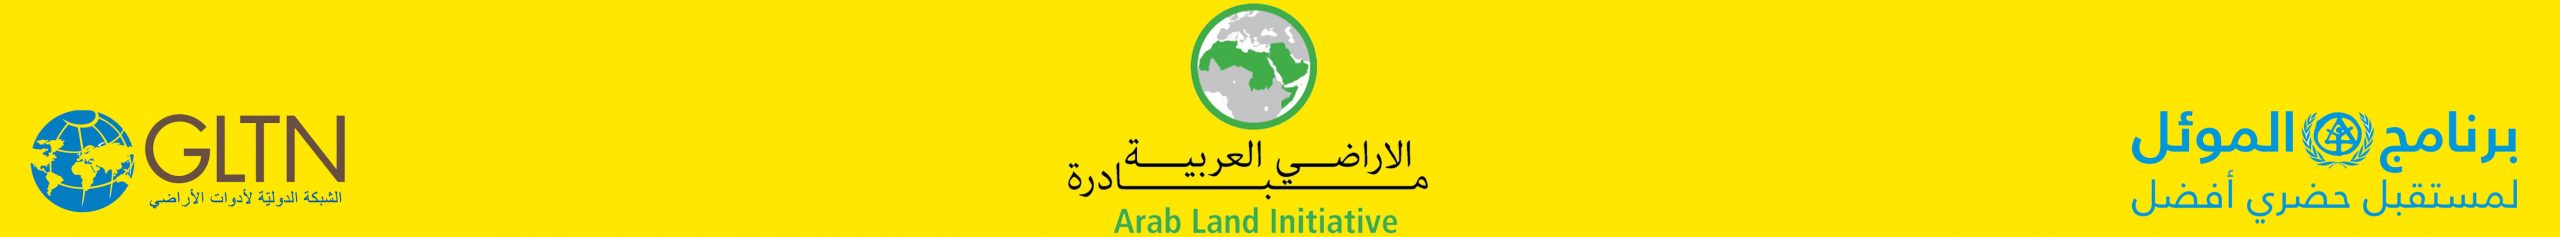 GLTN's Arab Land Initiative